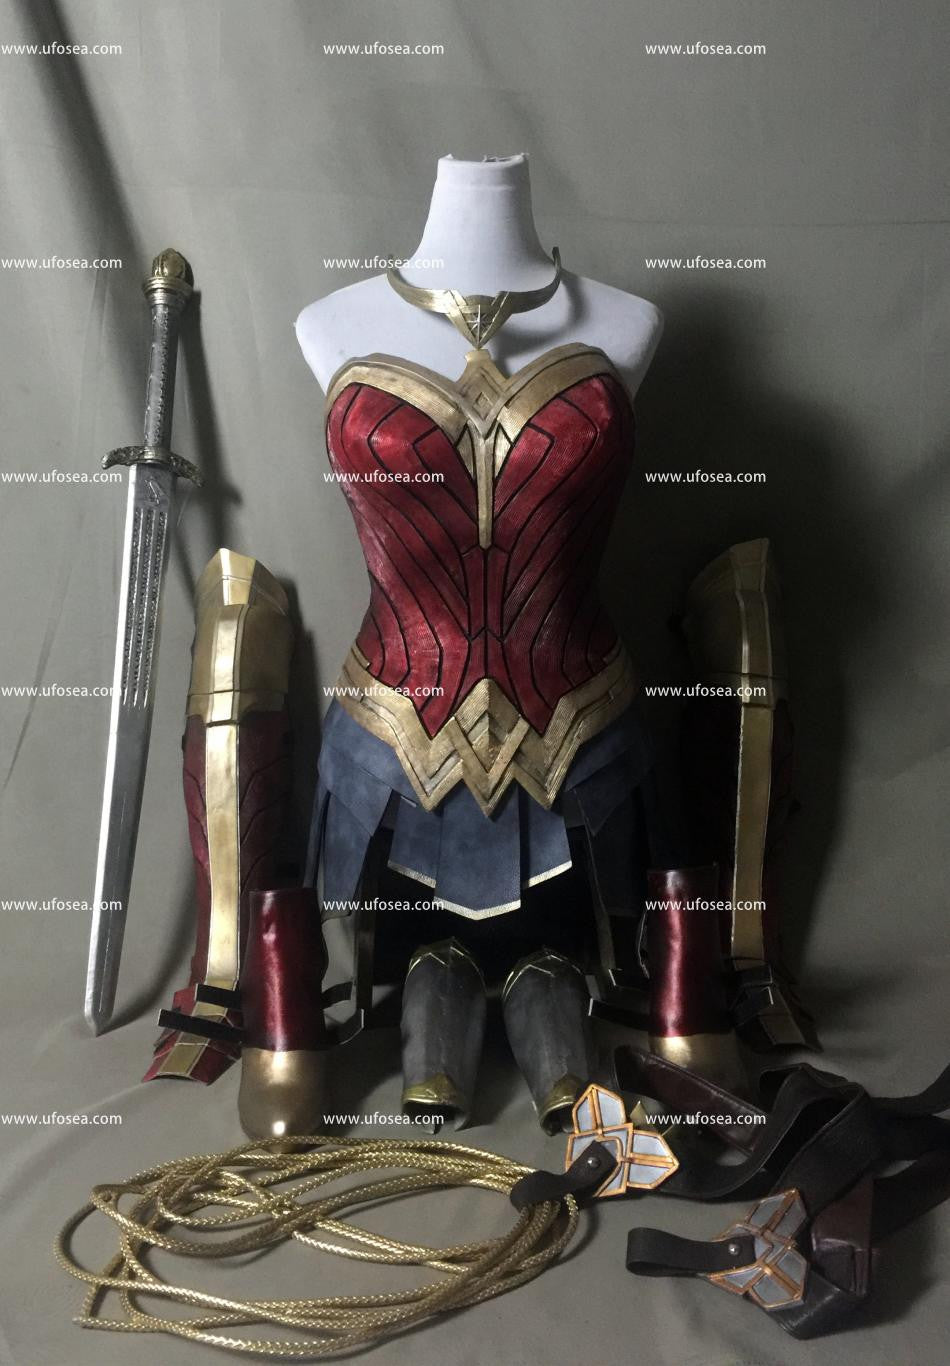 Wonder Woman armor and cosplay prop